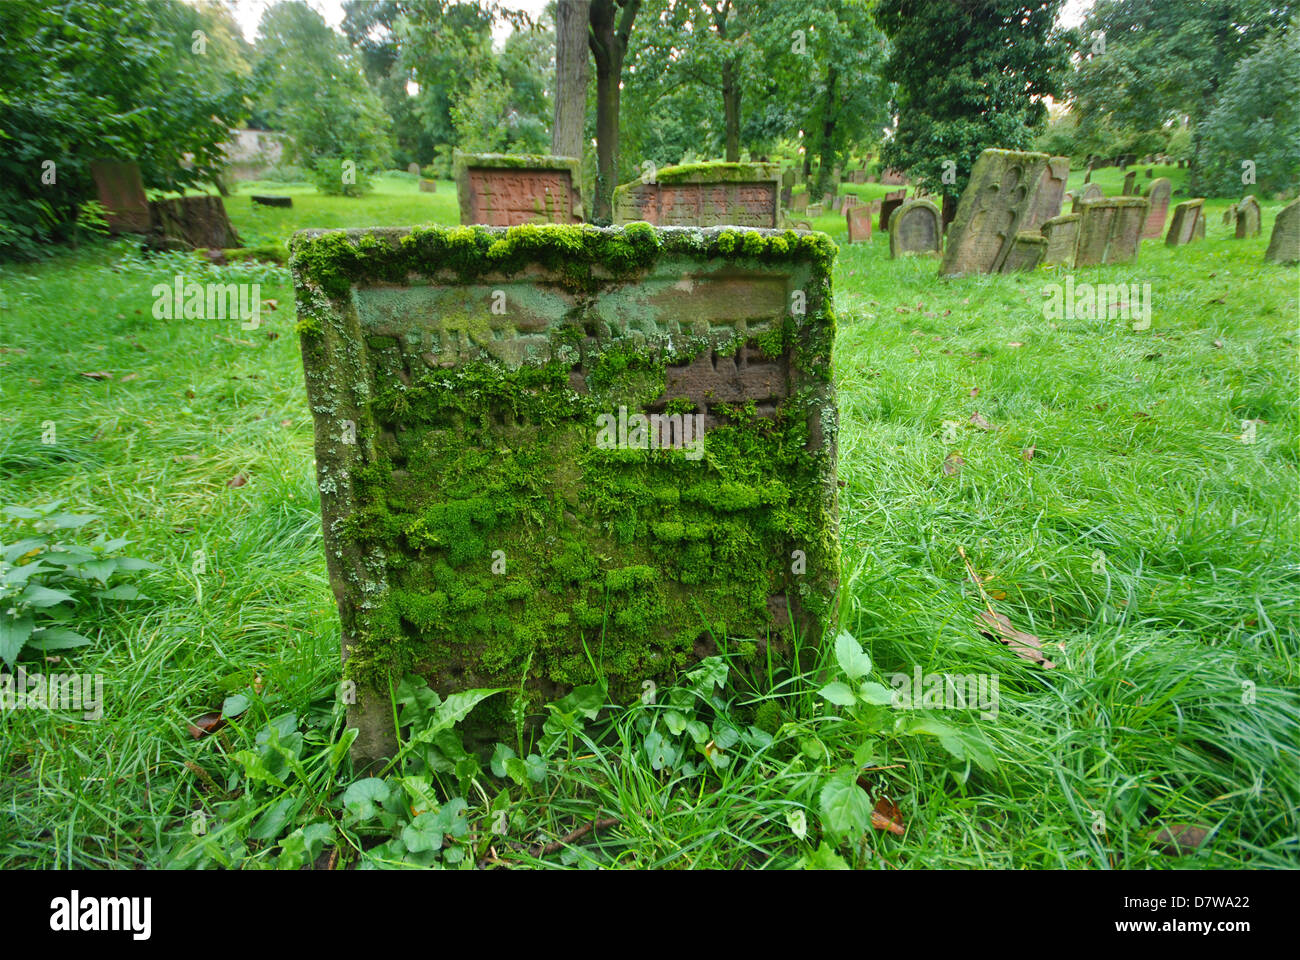 Mossy Hebrew writing on a grave in an old overgrown Jewish cemetery - Stock Image